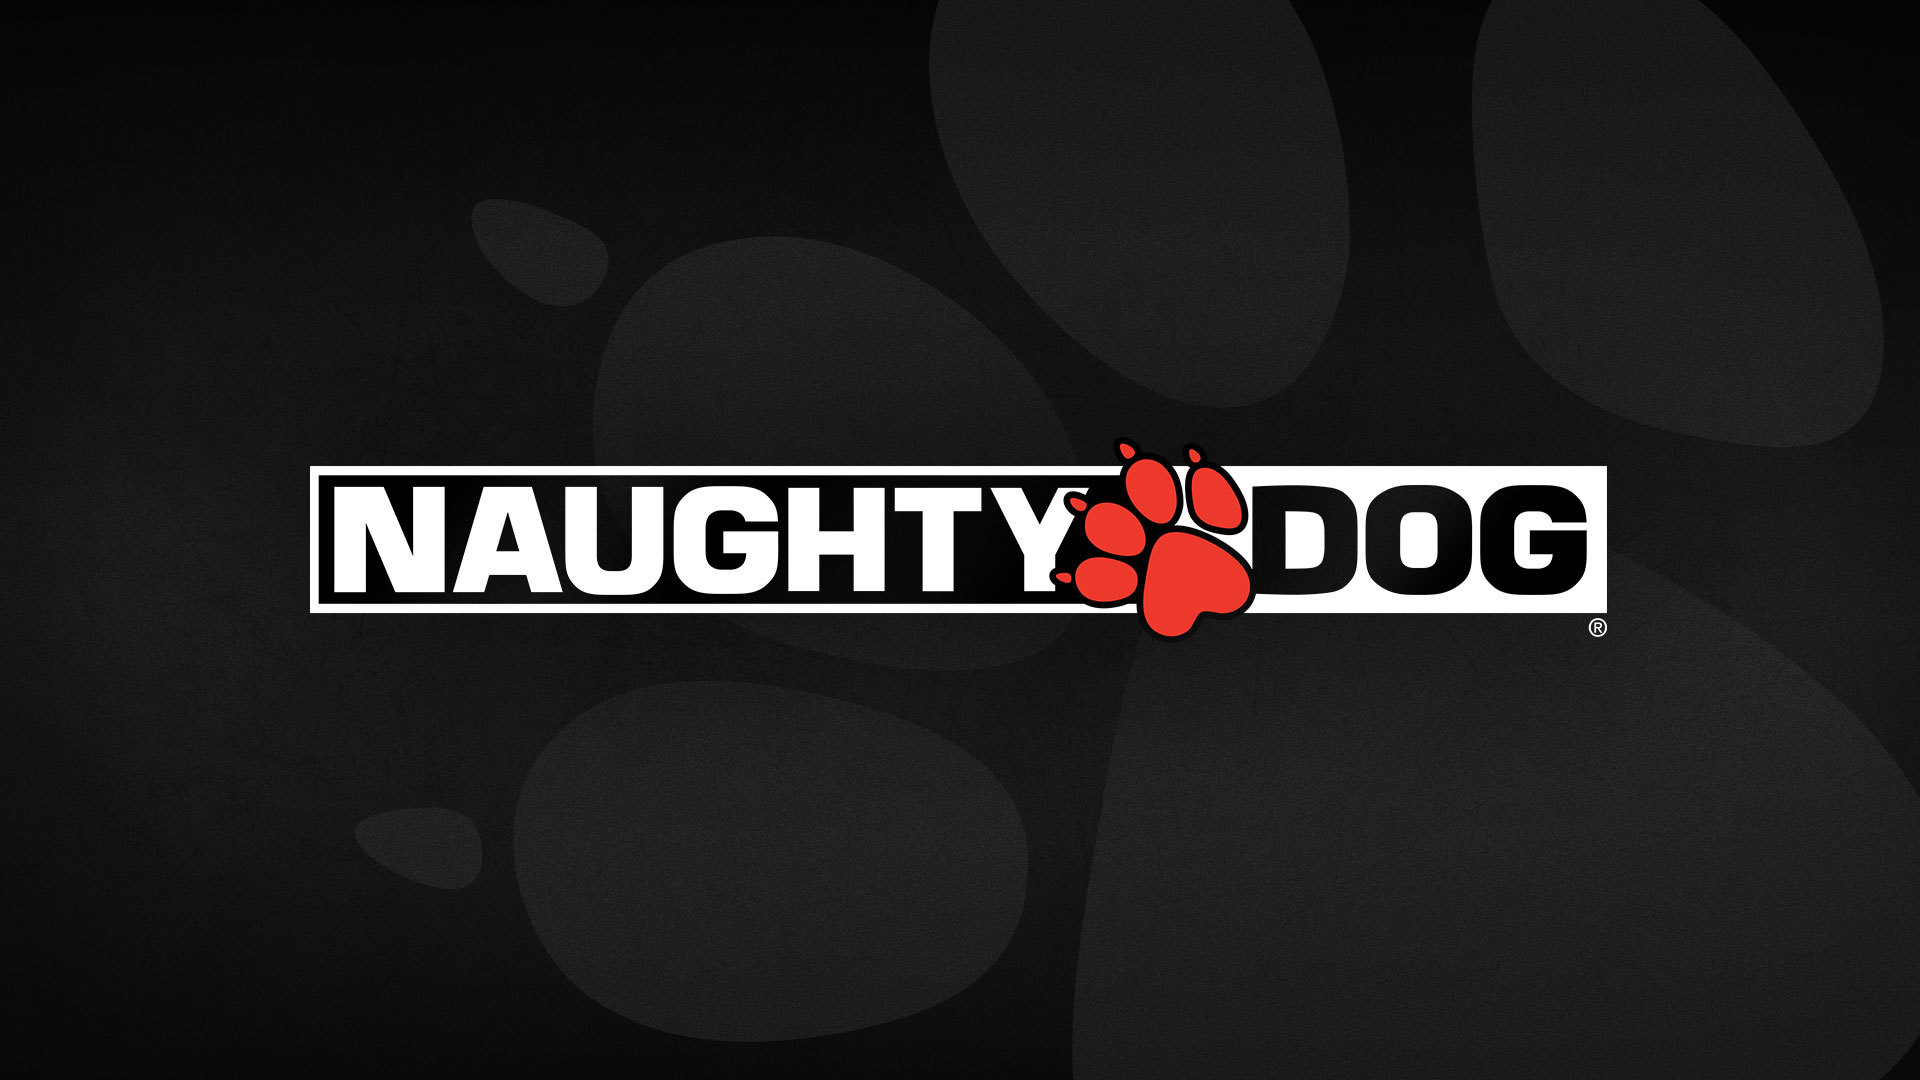 Sony Kundencenter Naughty Dog Naughty Dog